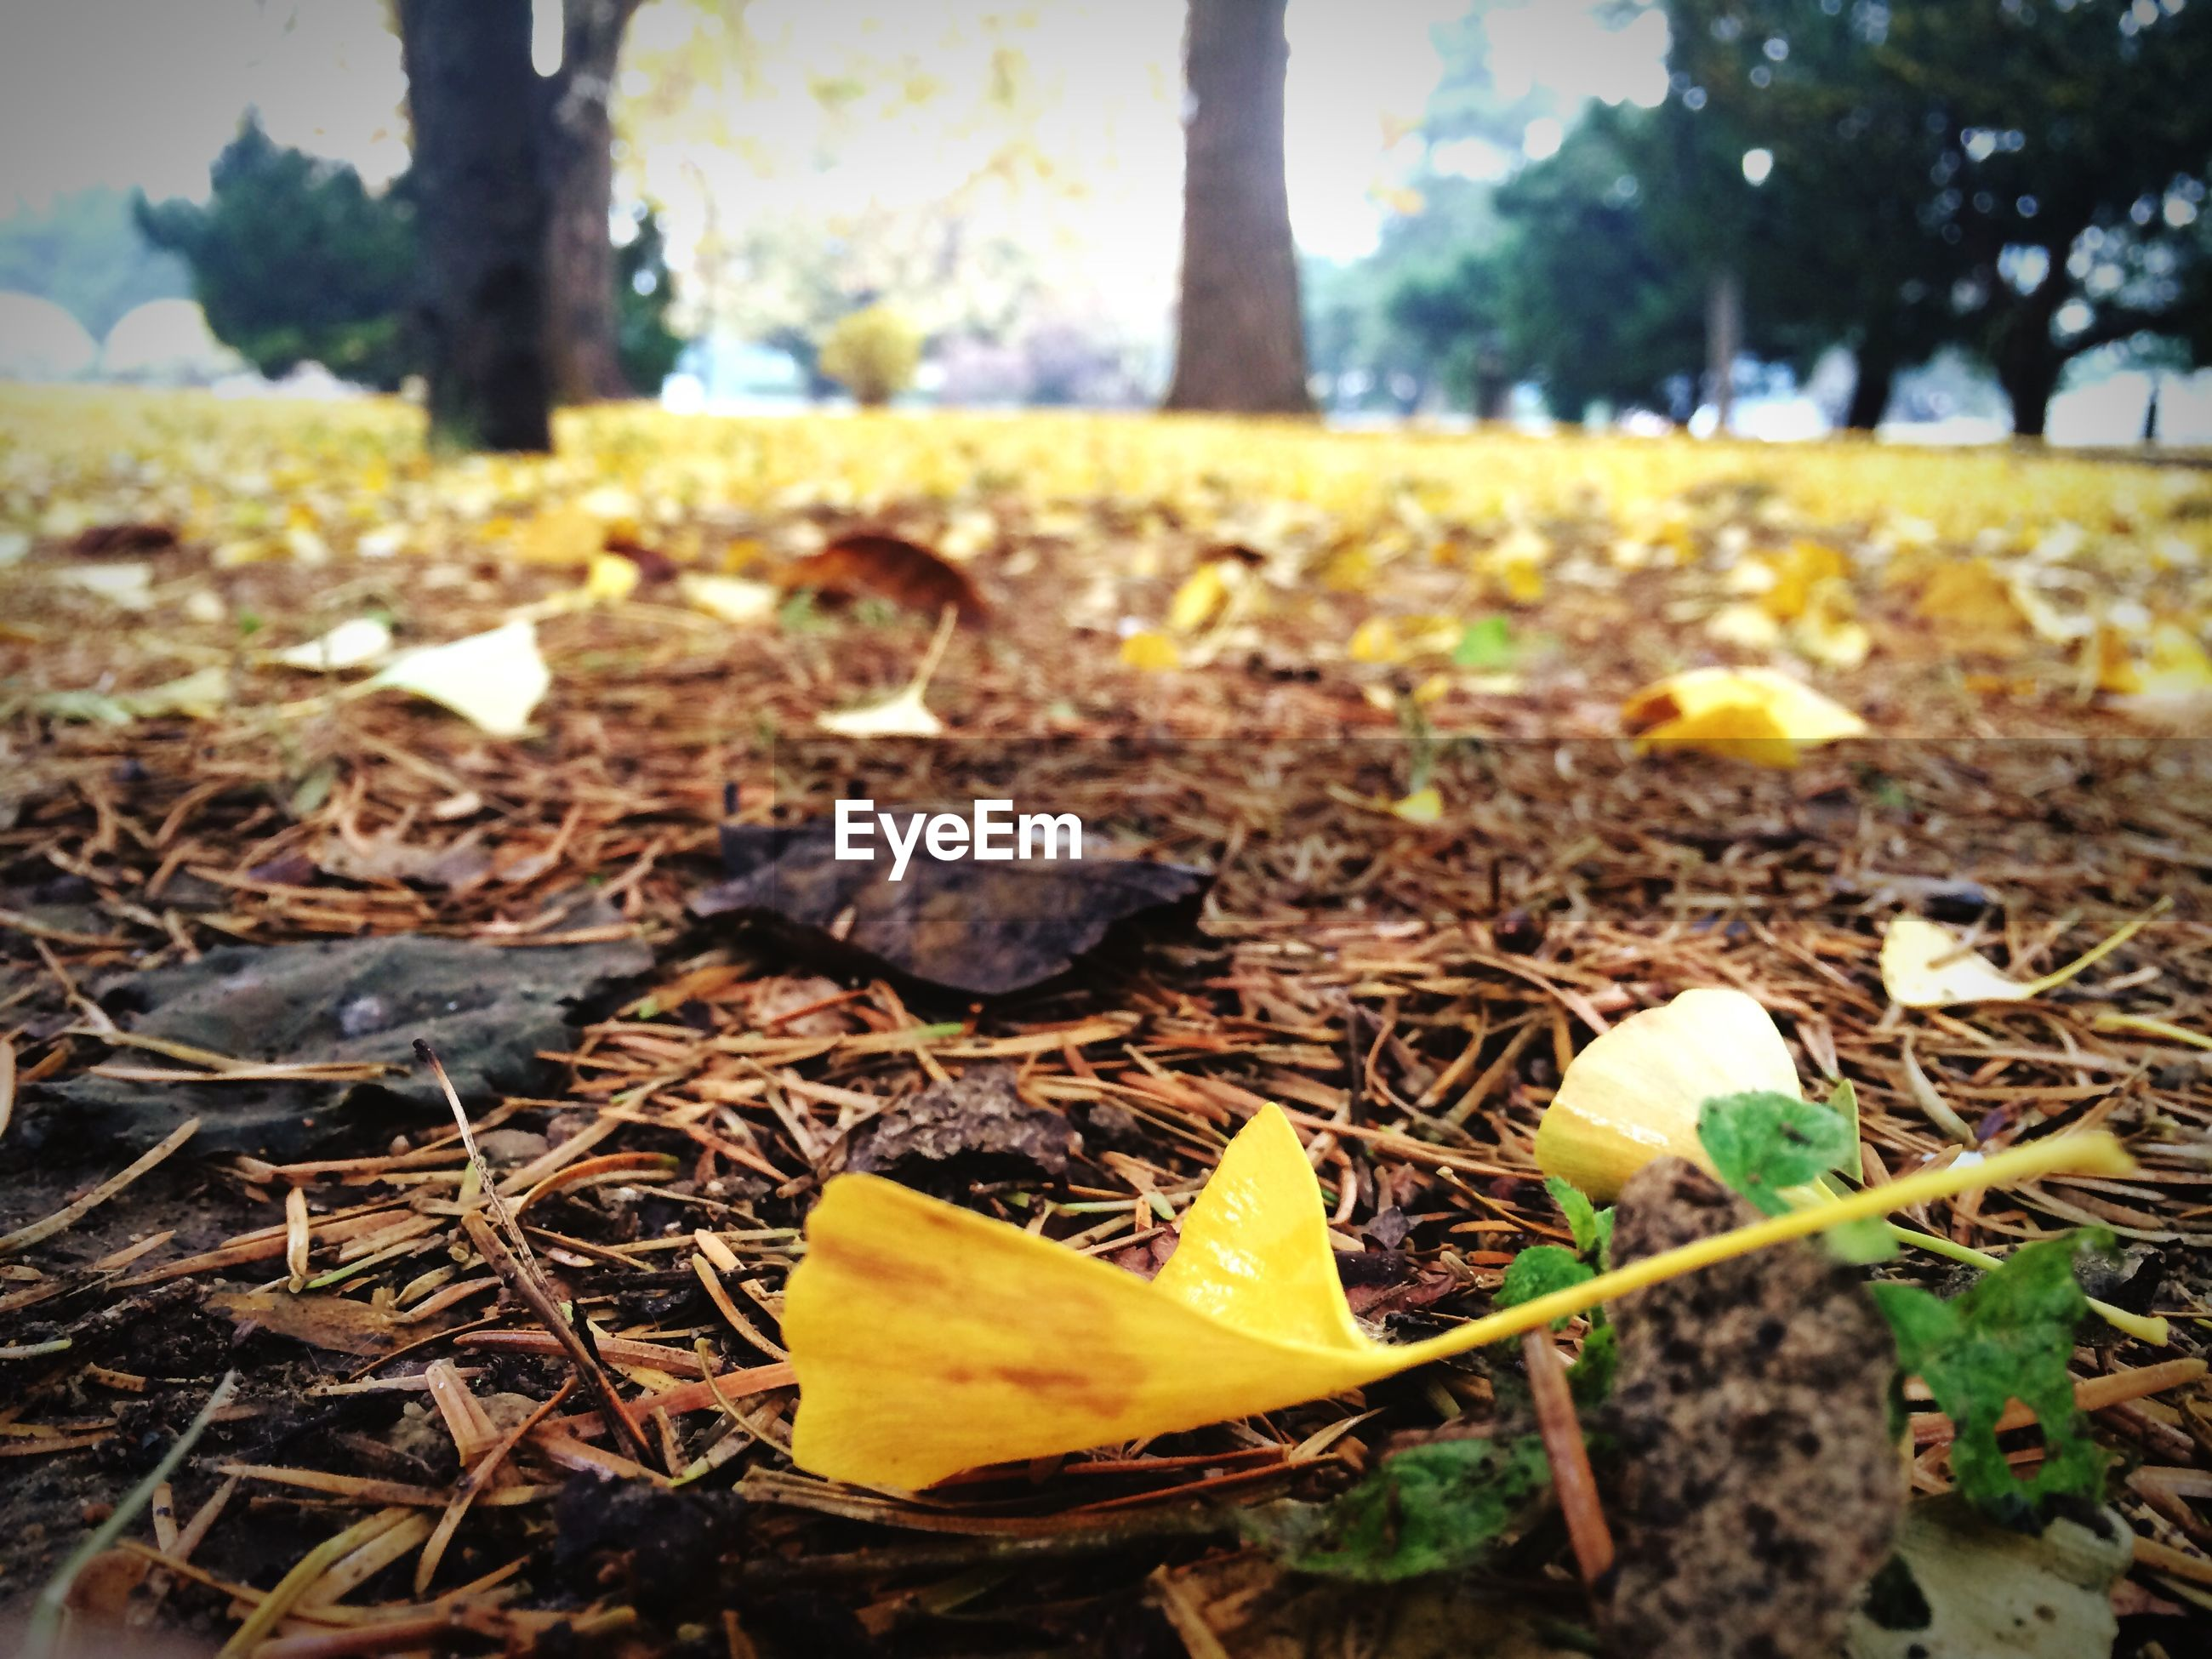 leaf, autumn, yellow, dry, change, focus on foreground, field, season, nature, fallen, leaves, selective focus, close-up, growth, surface level, fragility, day, grass, beauty in nature, tranquility